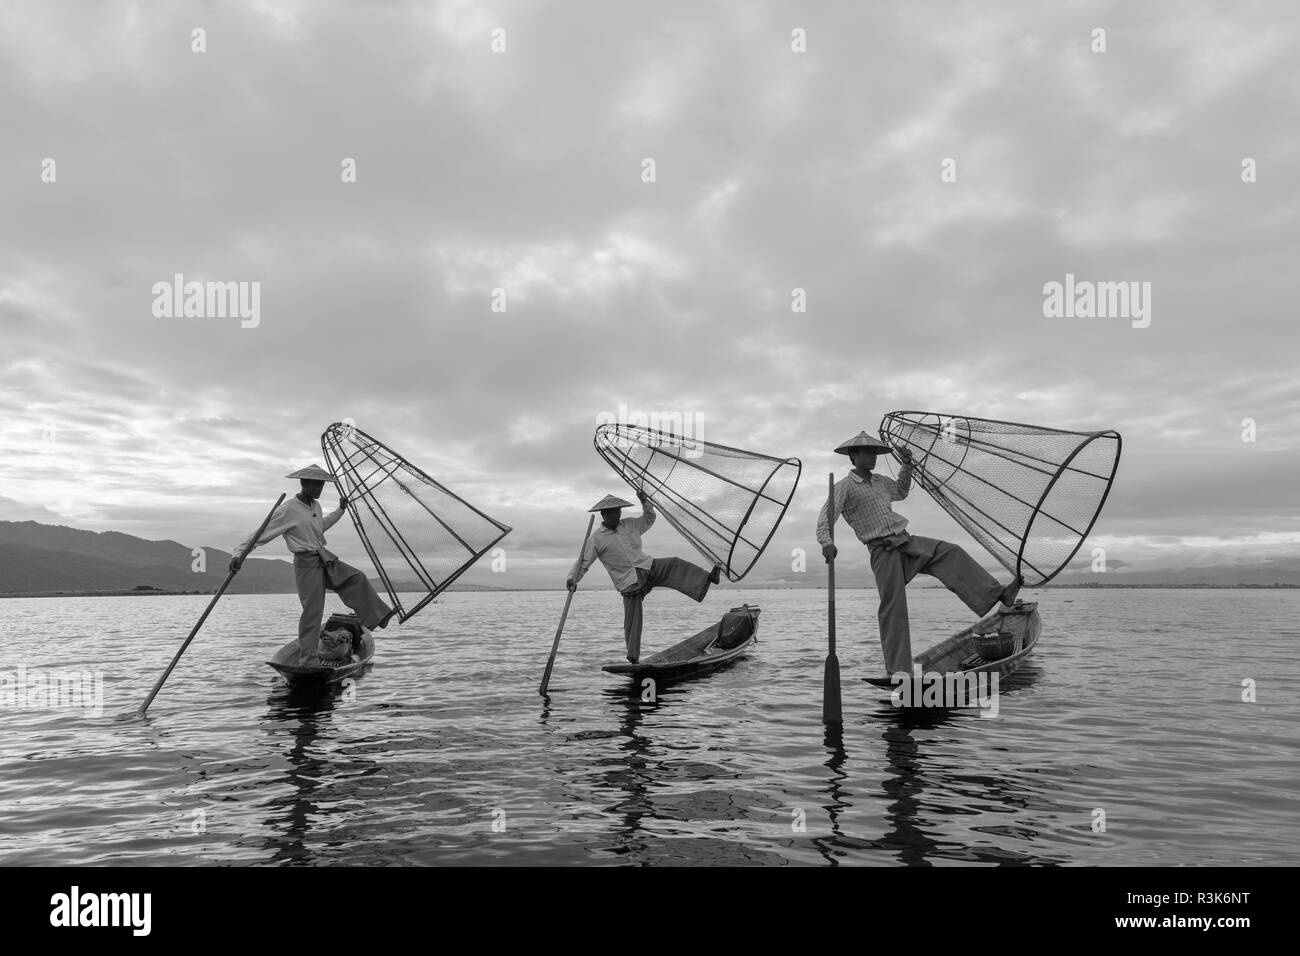 Fisherman display their conical nets used for fishing in Inle Lake, Myanmar. - Stock Image